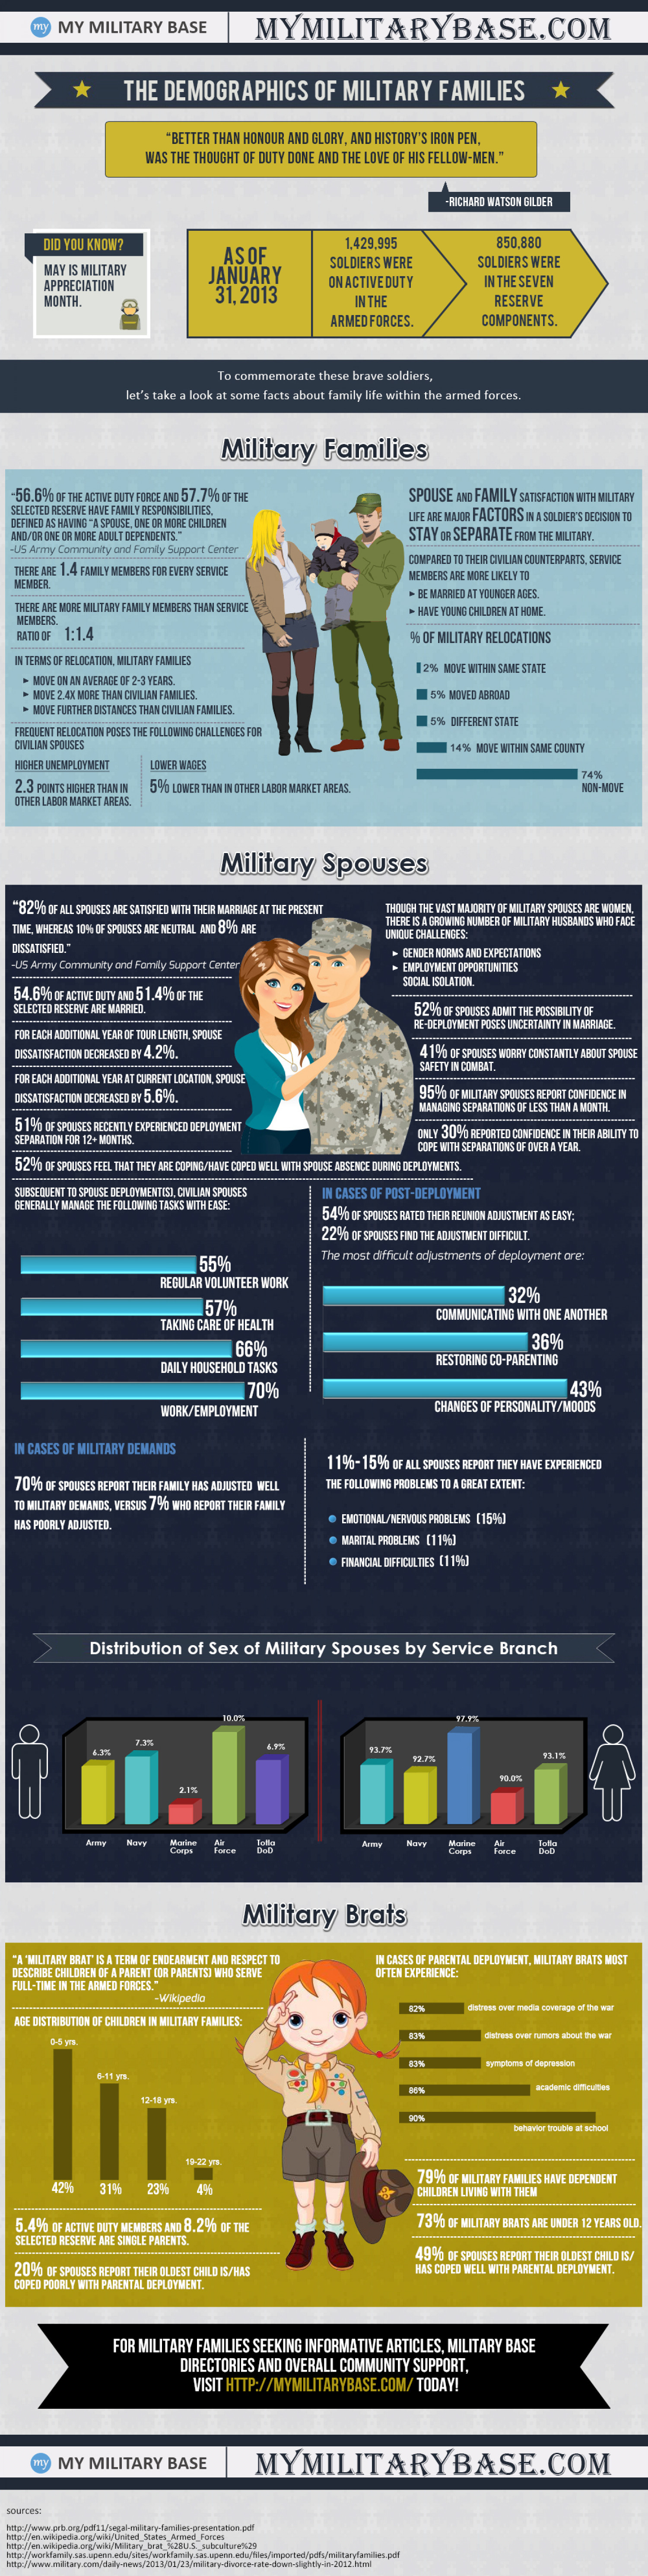 The Demographics of Military Families Infographic